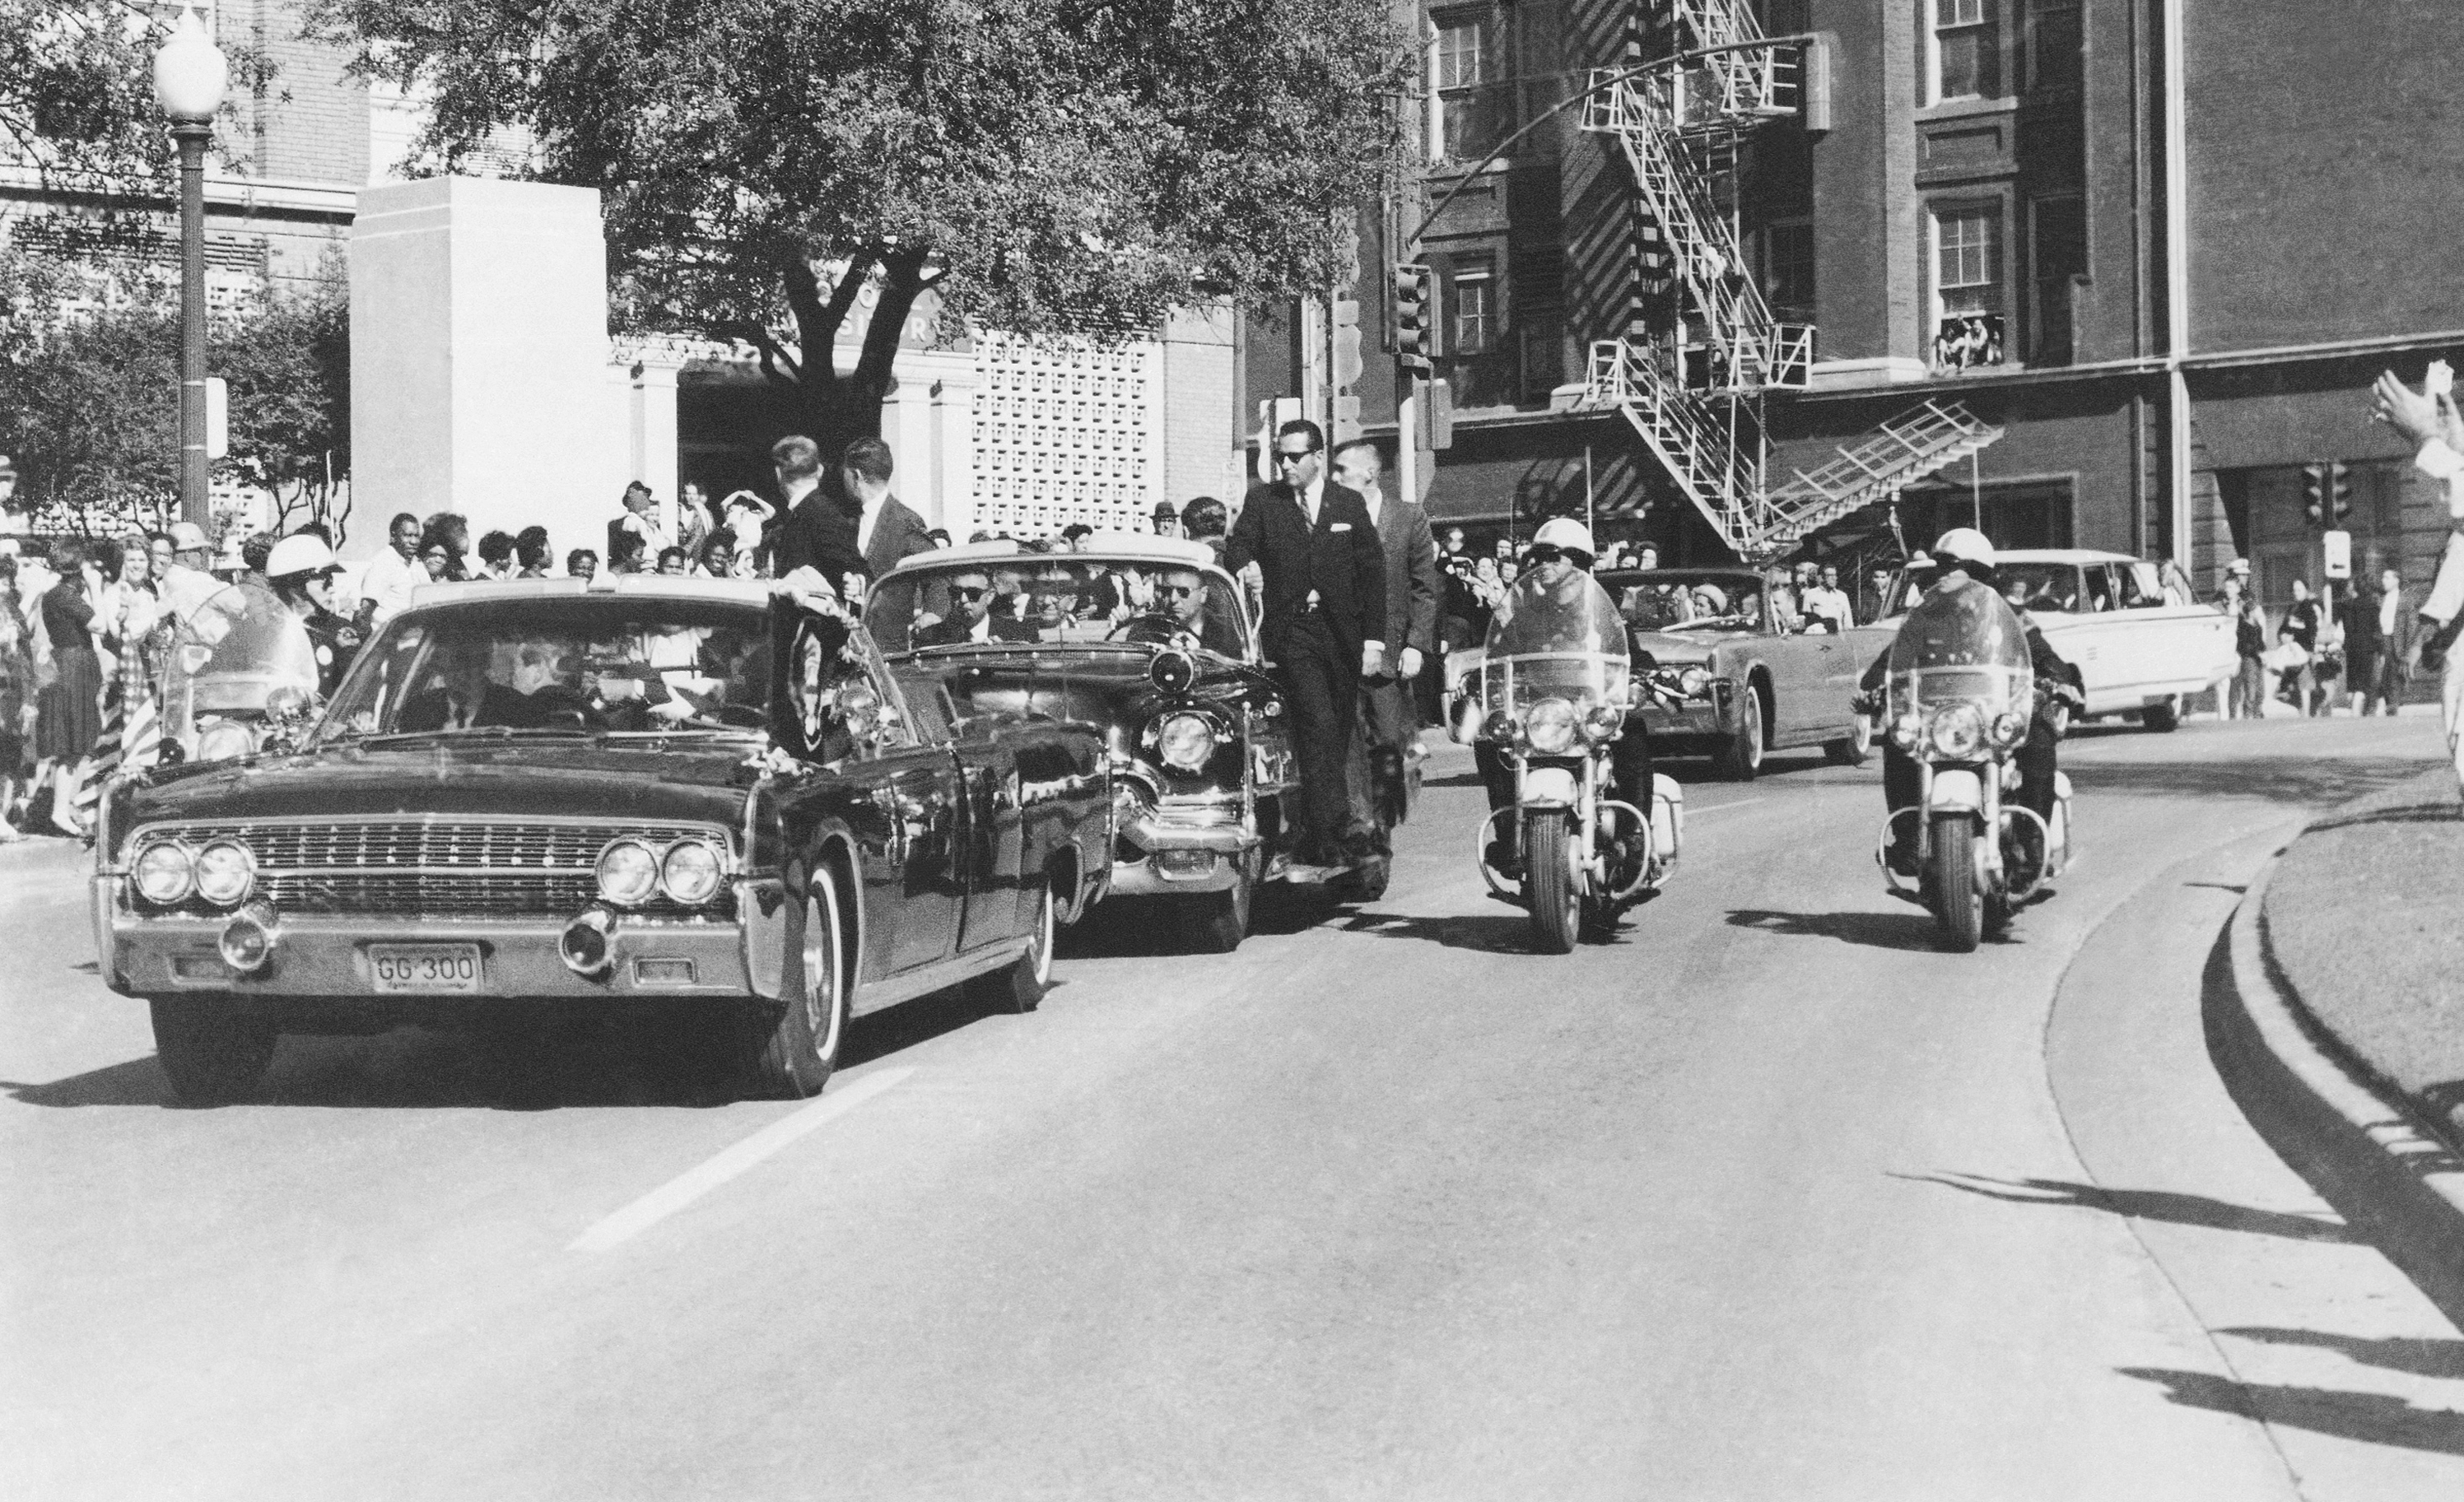 Seen through the limousine's windshield as it proceeds along Elm Street past the Texas School Book Depository, President John F. Kennedy appears to raise his hand toward his head within seconds of being fatally shot in Dallas, Nov 22, 1963.